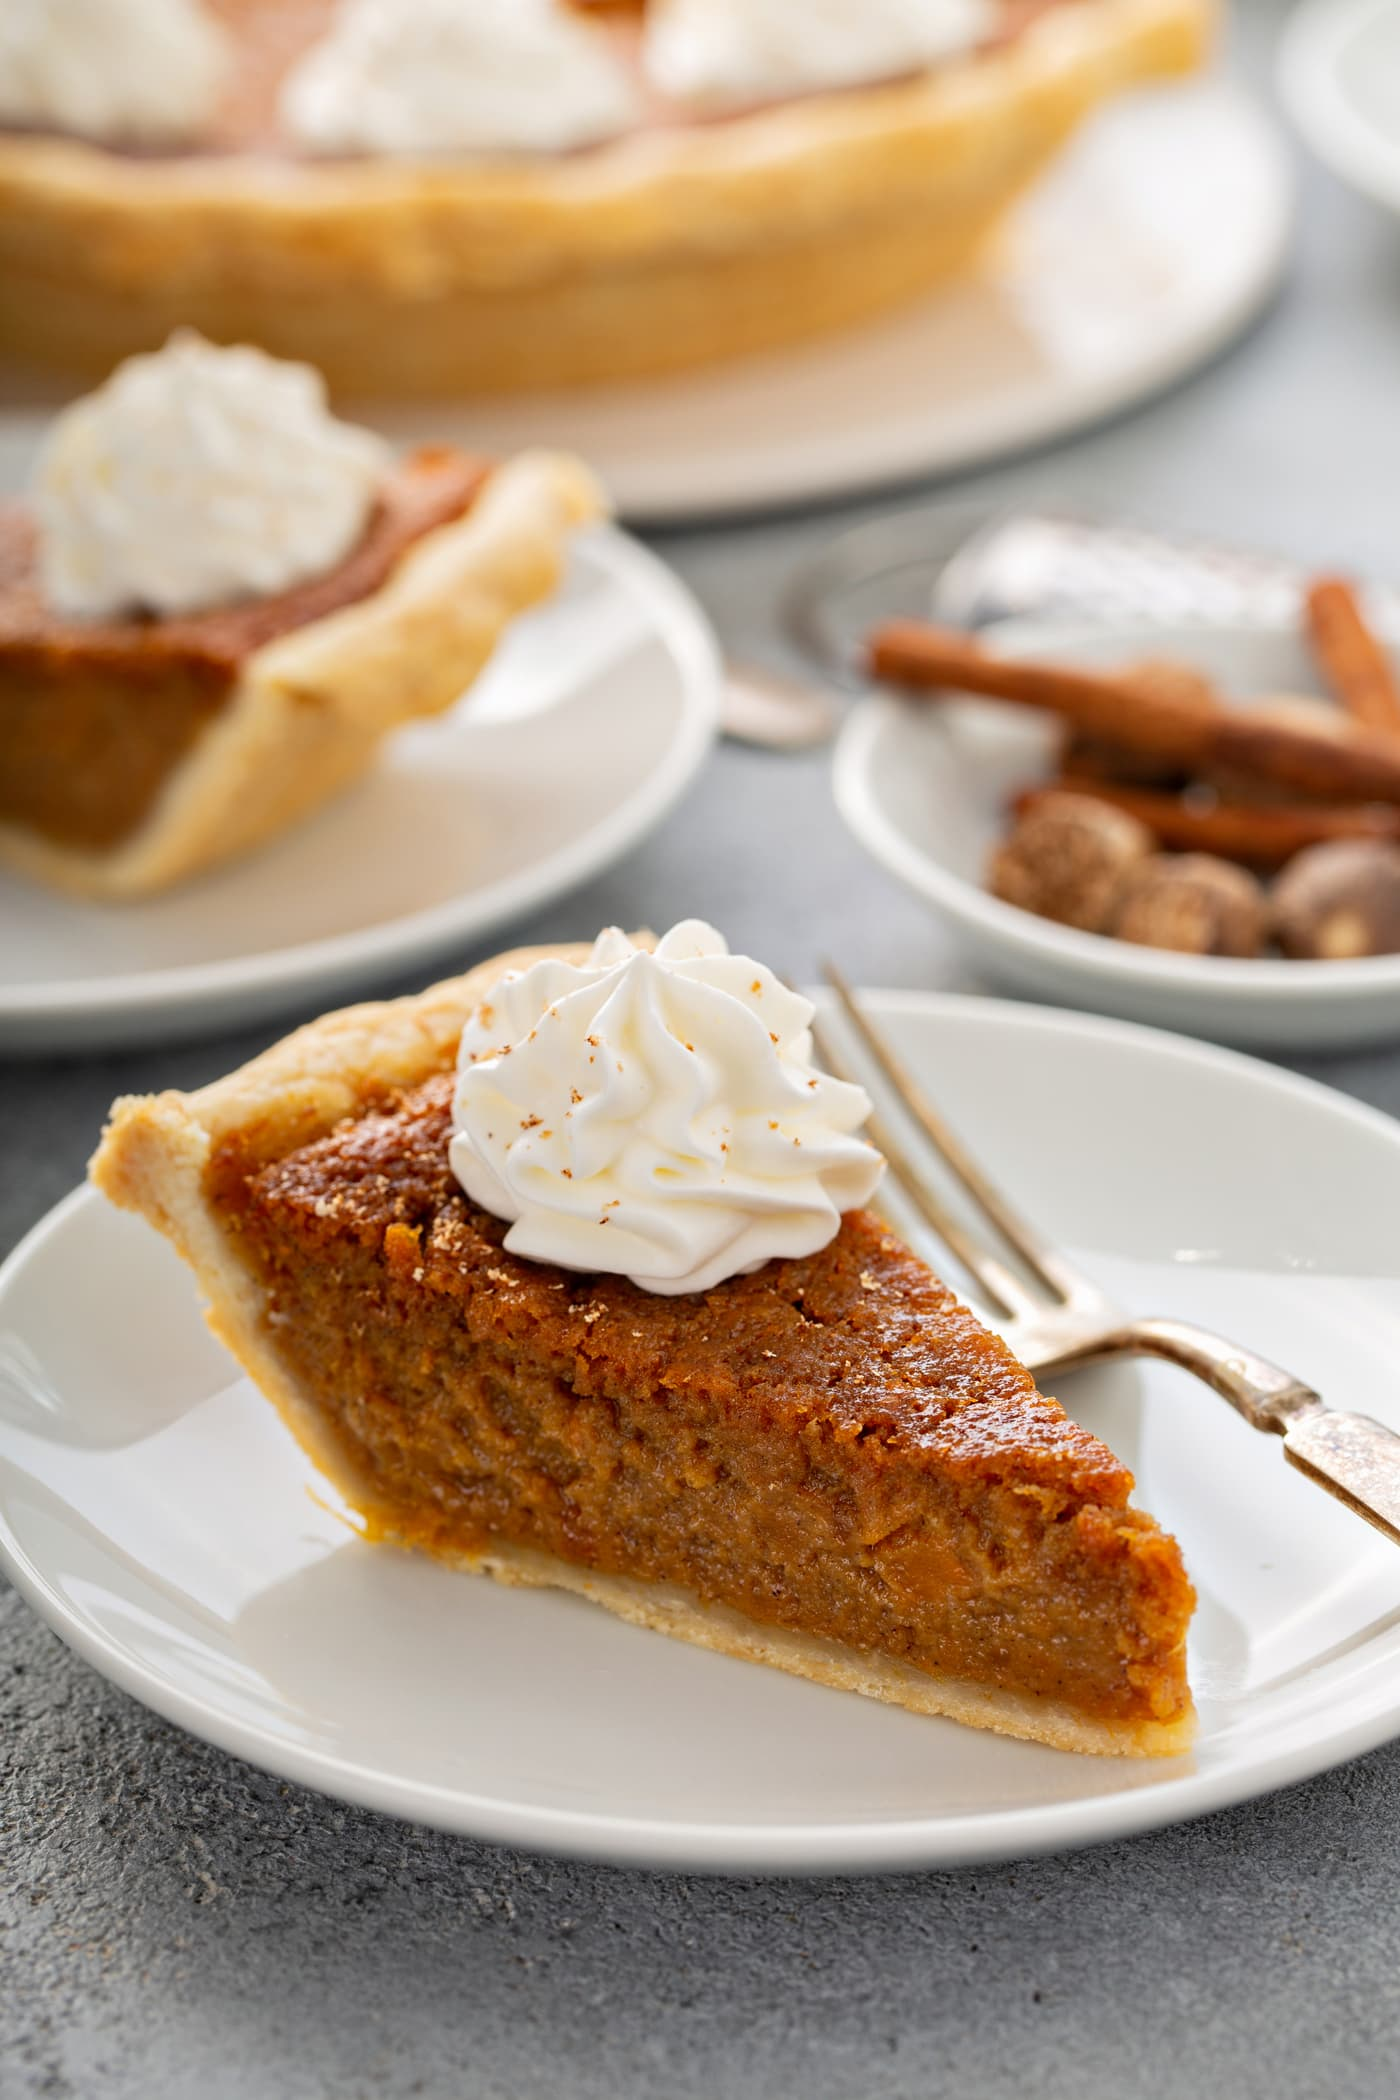 A photo of a slice of sweet potato pie with a dollop of whipped cream on top sitting on a white plate.